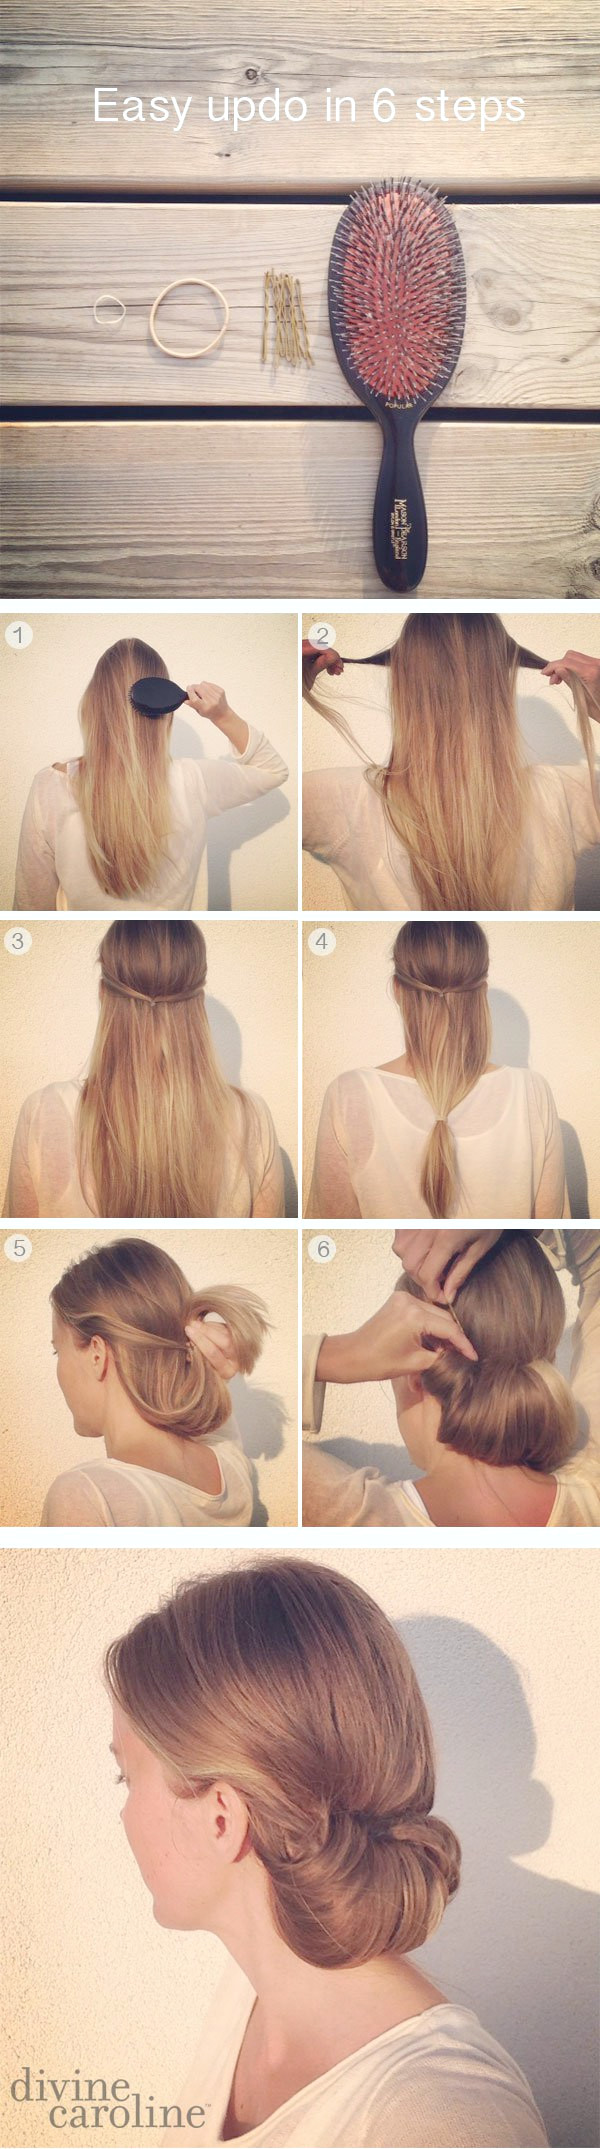 Tucked Updo Peinado Tutorial